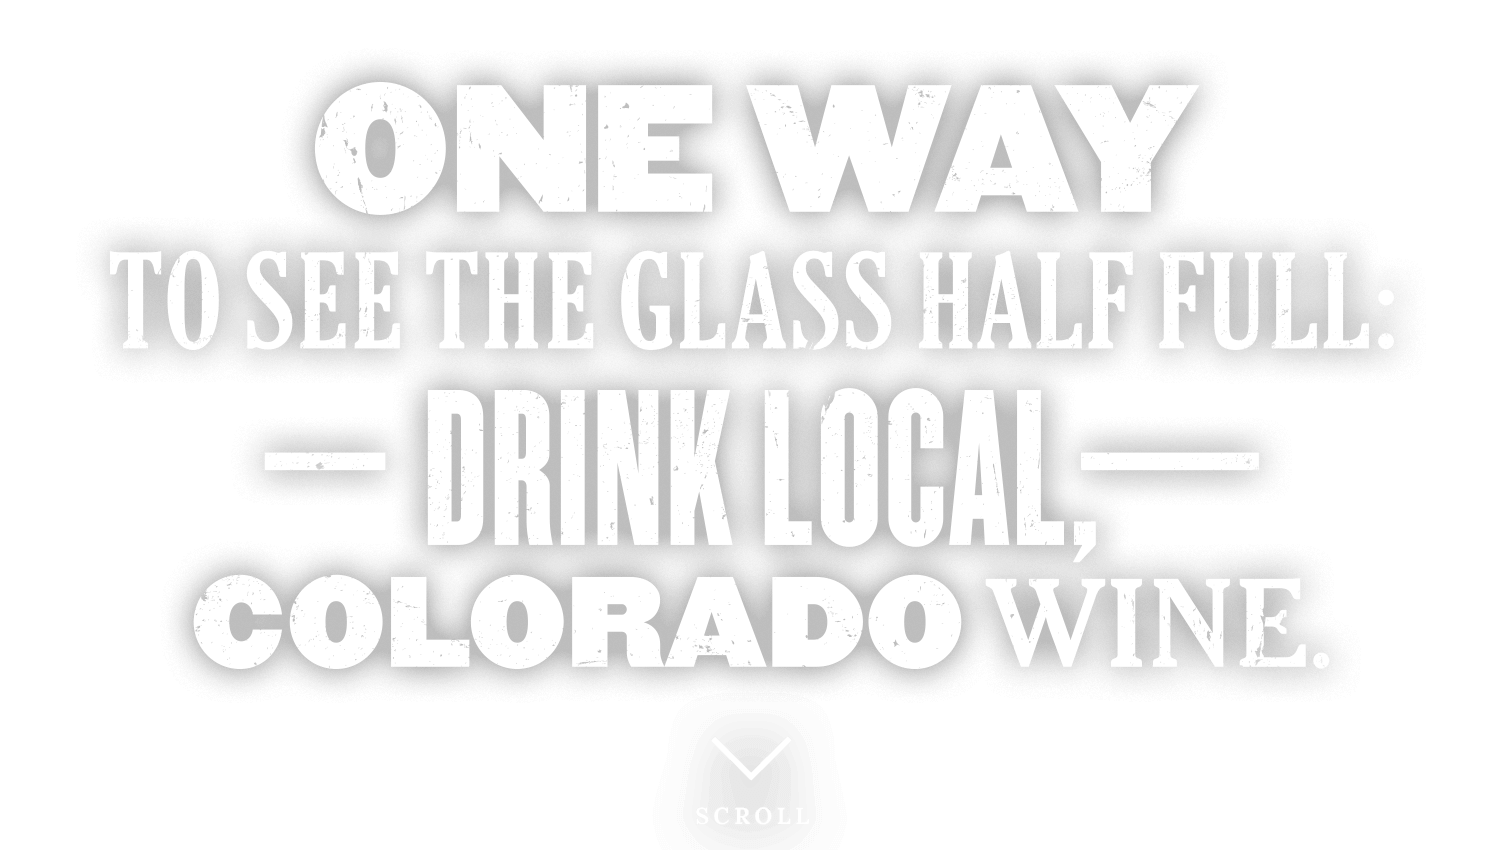 Drink local Colorado wine